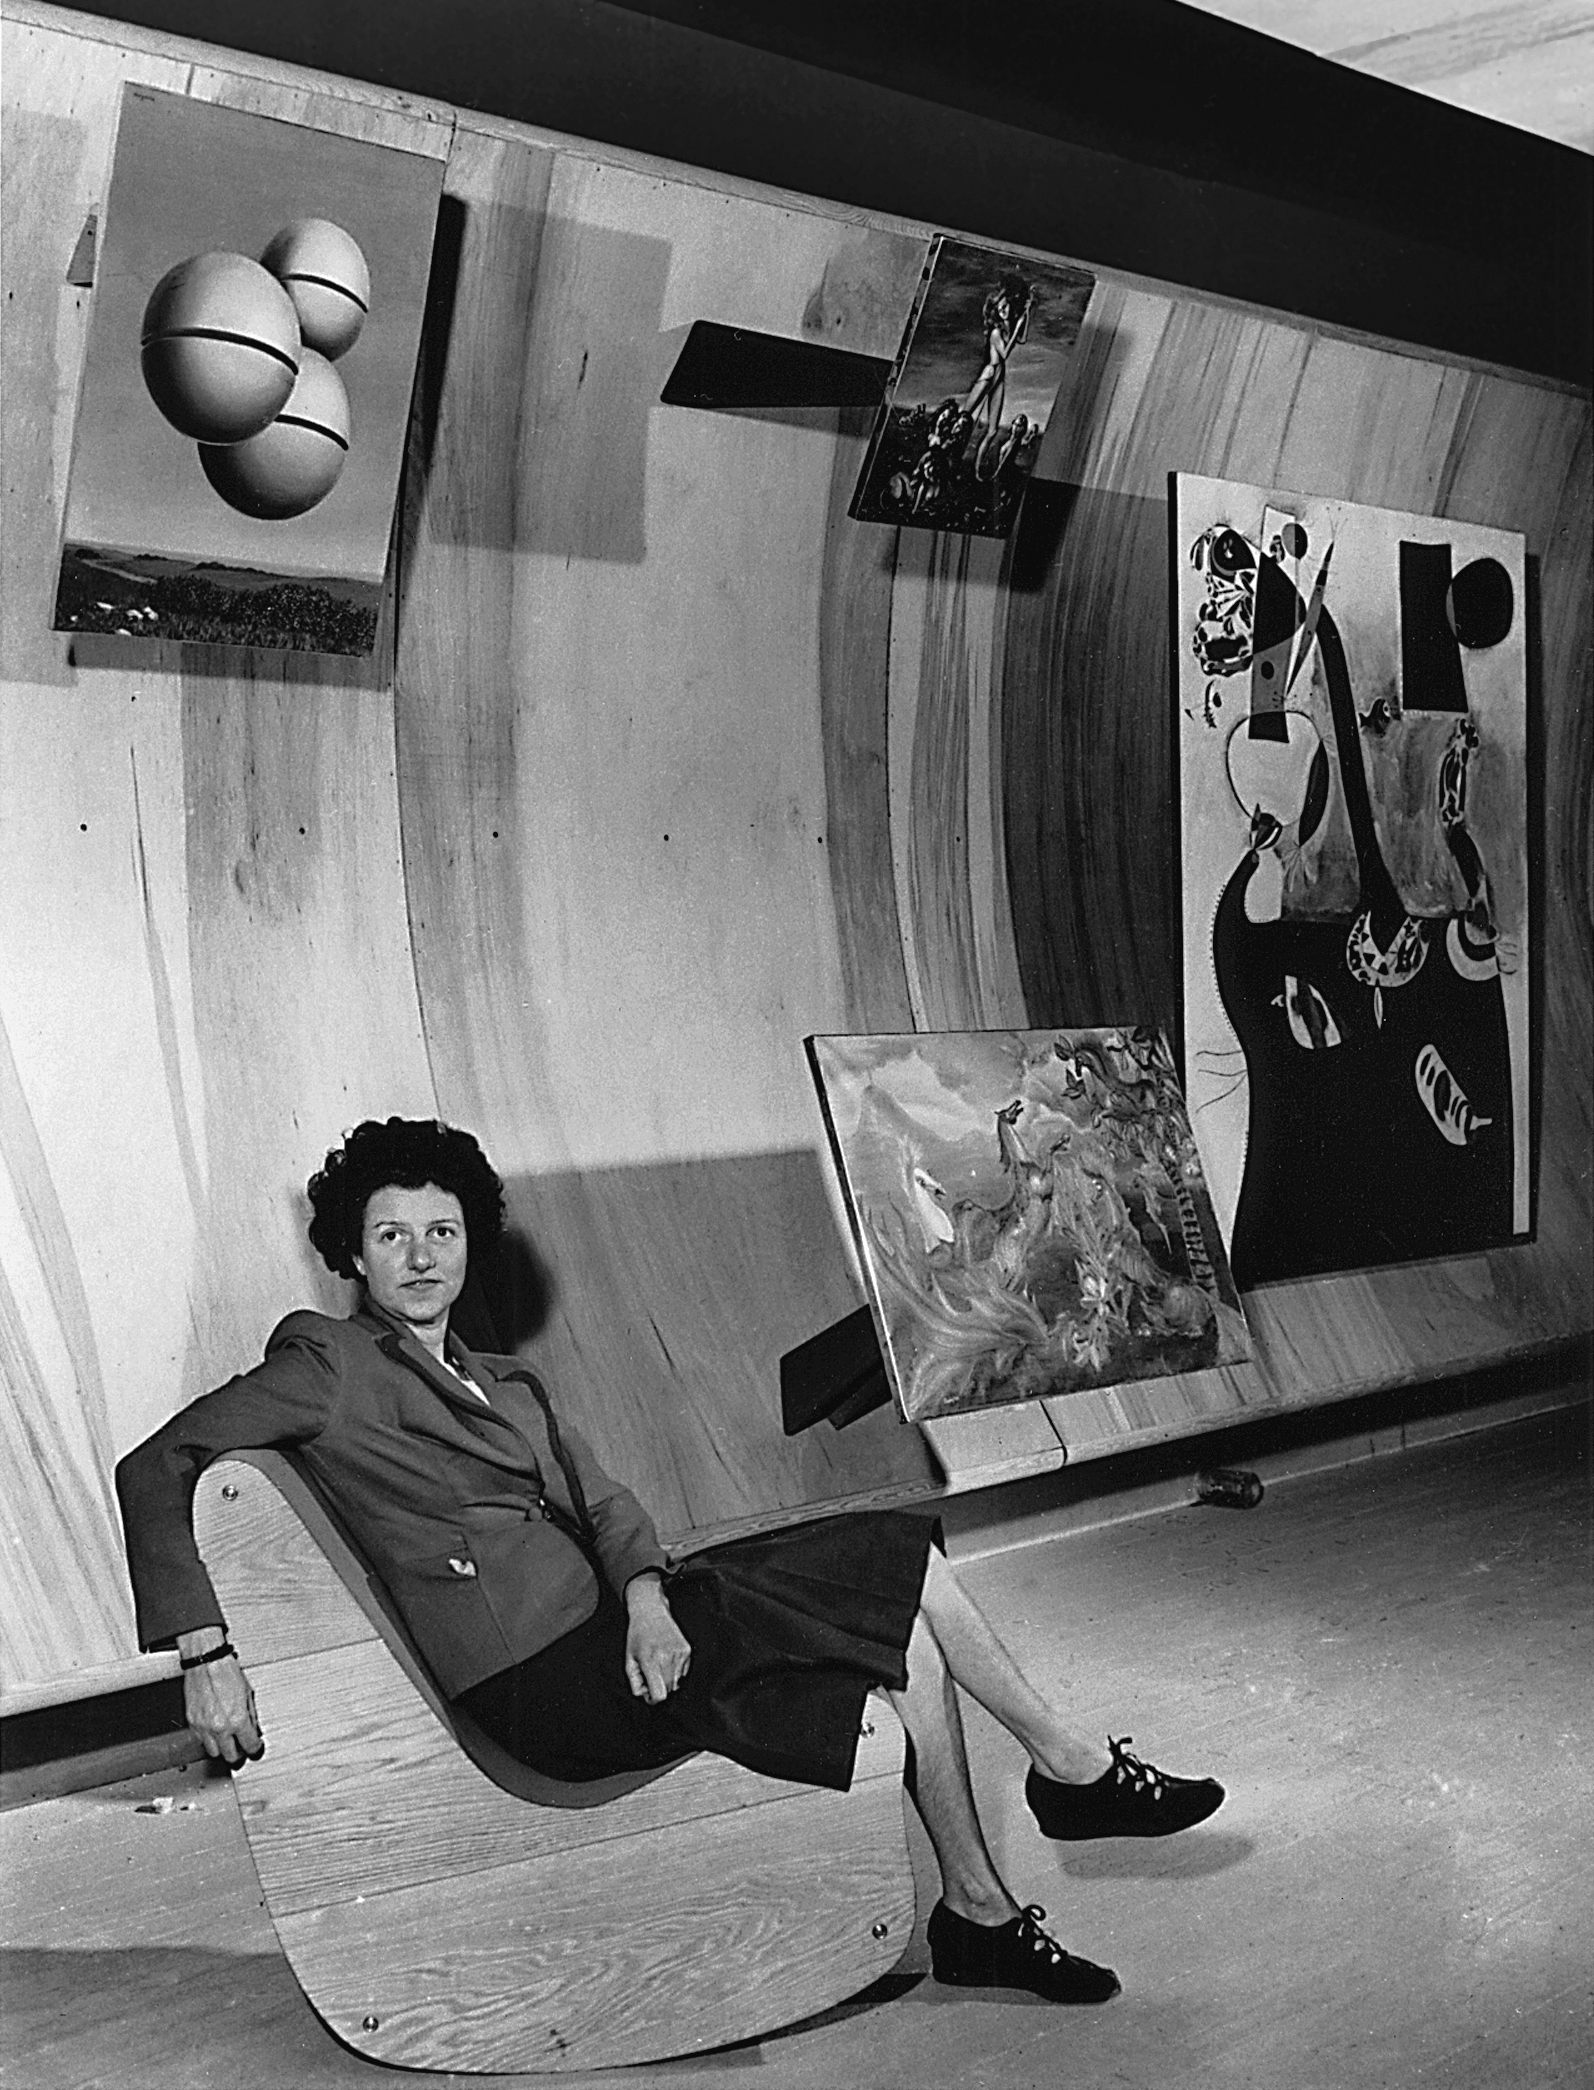 Peggy Guggenheim seated on a Correalist Rocker, Surrealist Gallery, Art of This Century, New York, c. 1942. From left: René Magritte, Voice of Space (La voix des airs, 1931); Leonor Fini, The Shepherdess of the Sphinxes (1941); Leonora Carrington, The Horses of Lord Candlestick (1938); and Joan Mirò, Dutch Interior II (1928). © AP Photos courtesy Solomon R. Guggenheim Foundation, New York, 2017.